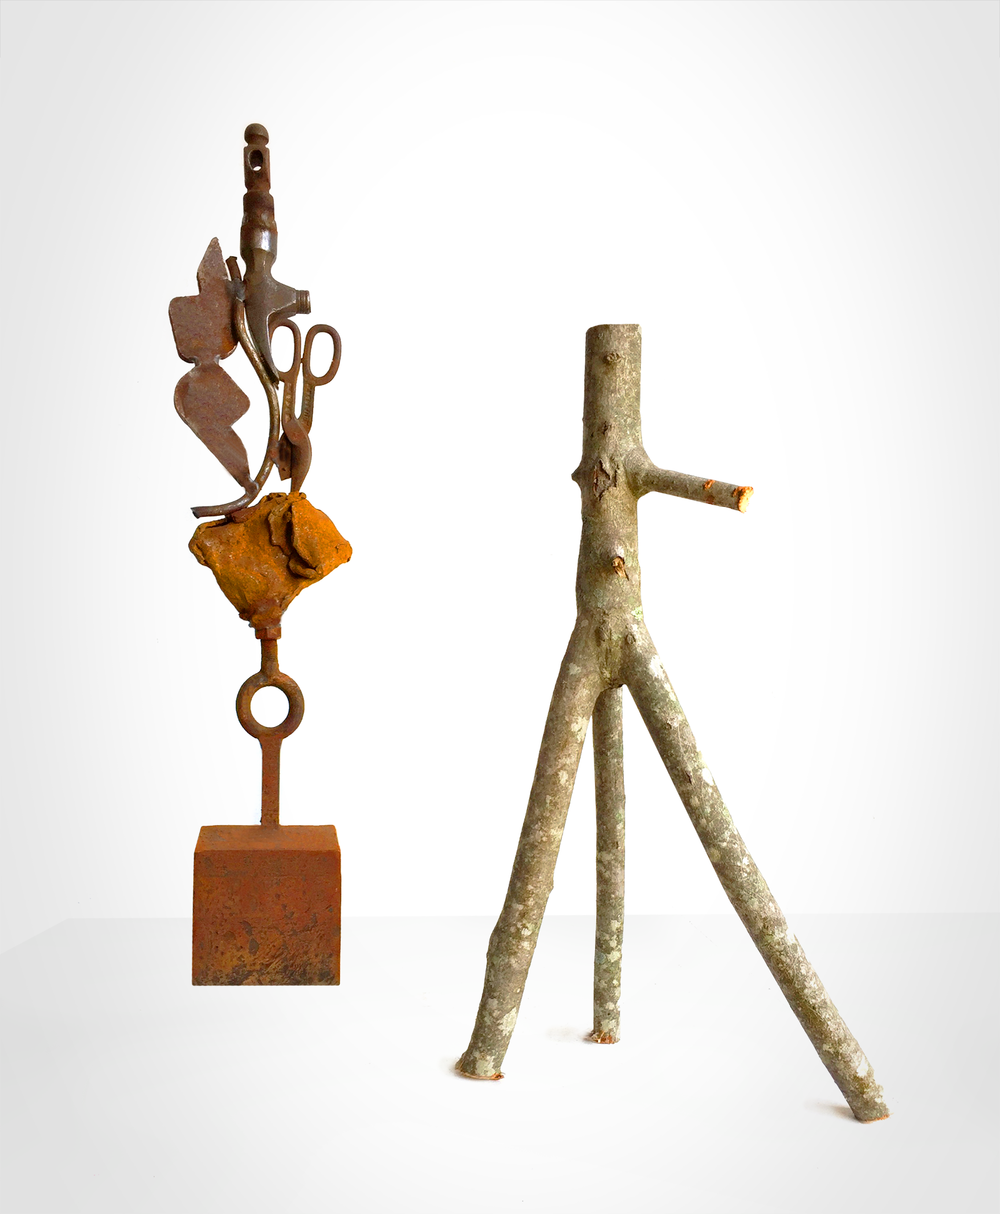 "'Two of a Kind' -  Sculpture: Fount of Dreams - from the new series Relationships. Shaped and found steel, orange rust patina. 20 lbs. 10"" wide x 16 "" high. $2300. Contact the studio."